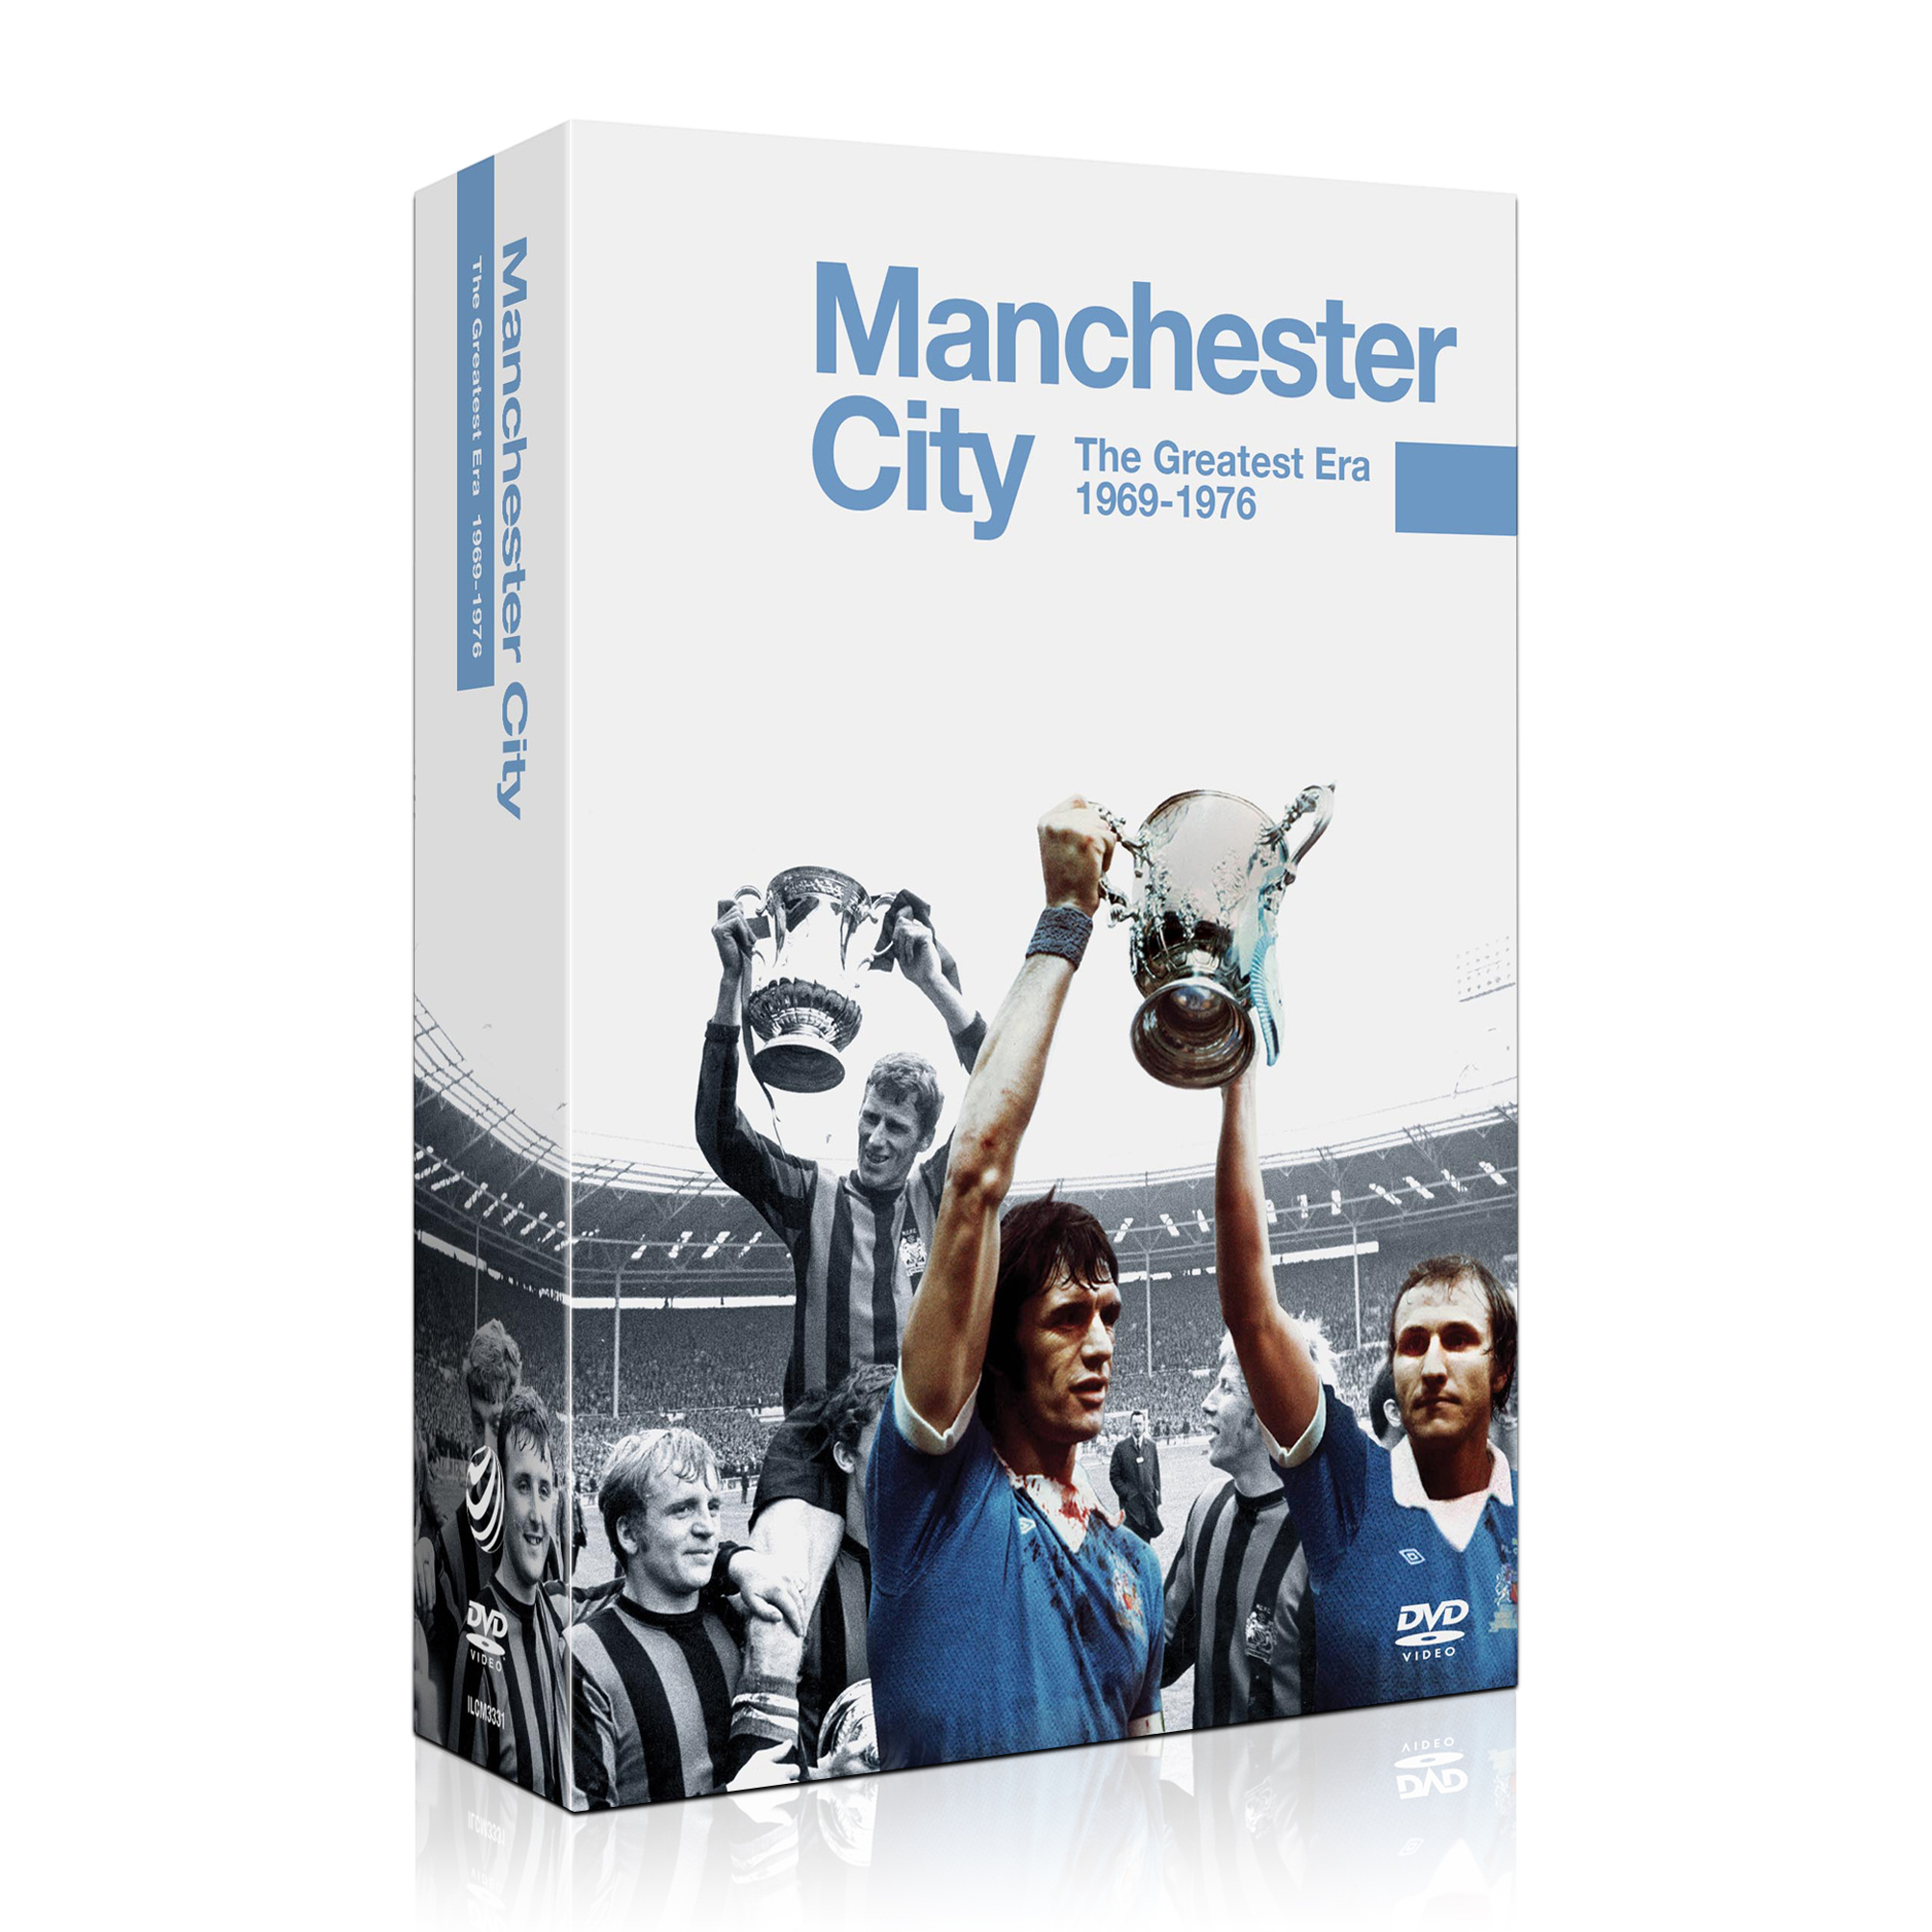 Manchester City The Greatest Era 1969-1976 DVD